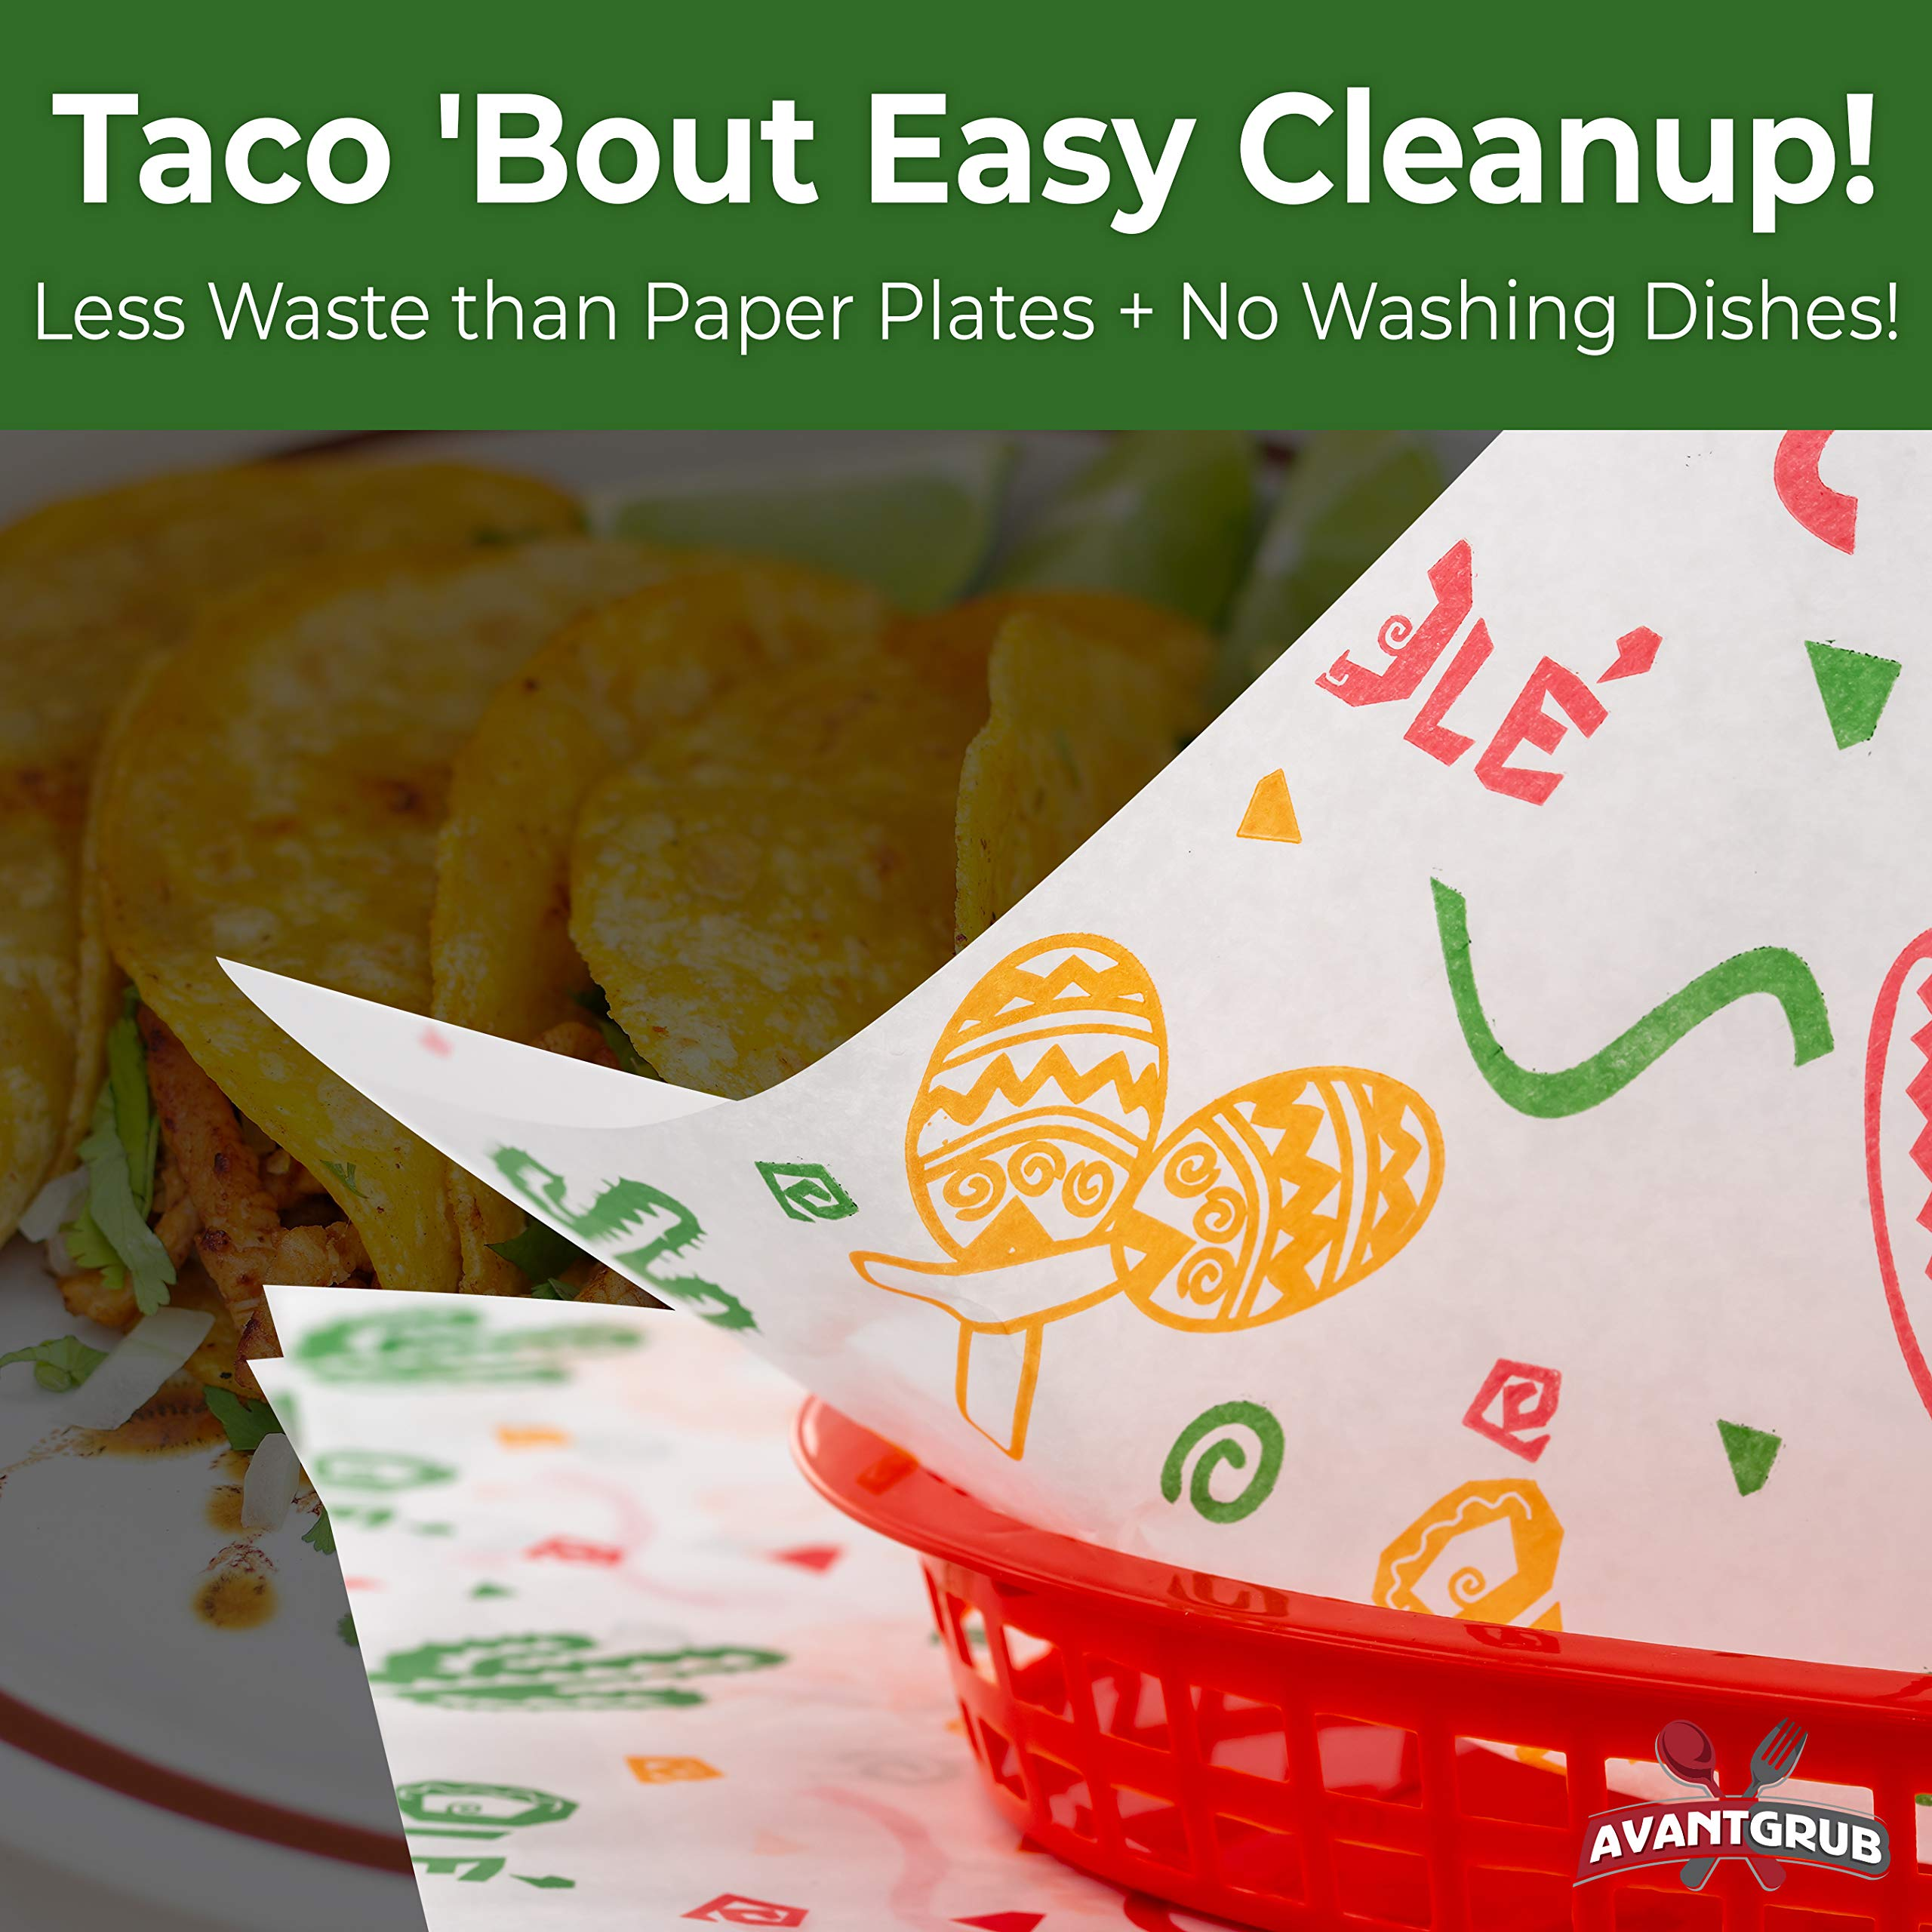 Fun, Fiesta Style 12in Deli Paper 1000 Ct. Greaseproof, Microwave-Safe Mexican Themed Tissue Great for Burrito Wrappers or Nacho Basket Liners. Southwest Party Supplies for Cinco de Mayo Celebration by Avant Grub (Image #6)